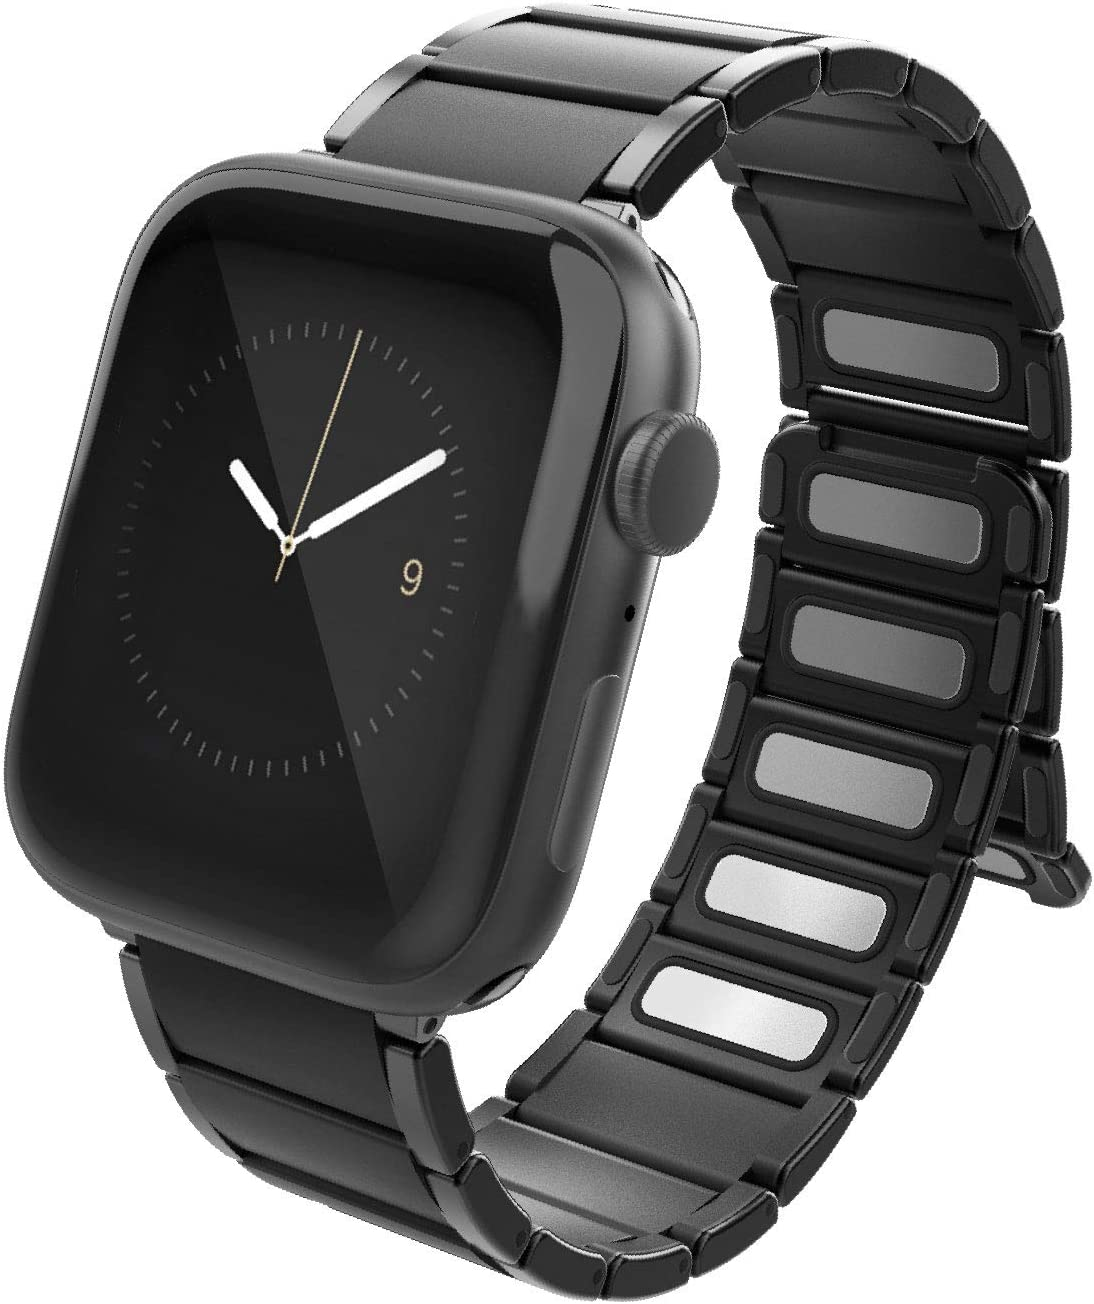 X-Doria Classic Band for Apple Watch Replaceable Smartwatch Band Compatible with Apple Watch 42mm and 44mm Apple Watch - for Apple Watch Series 1,2,3,4 and 5 (Black)